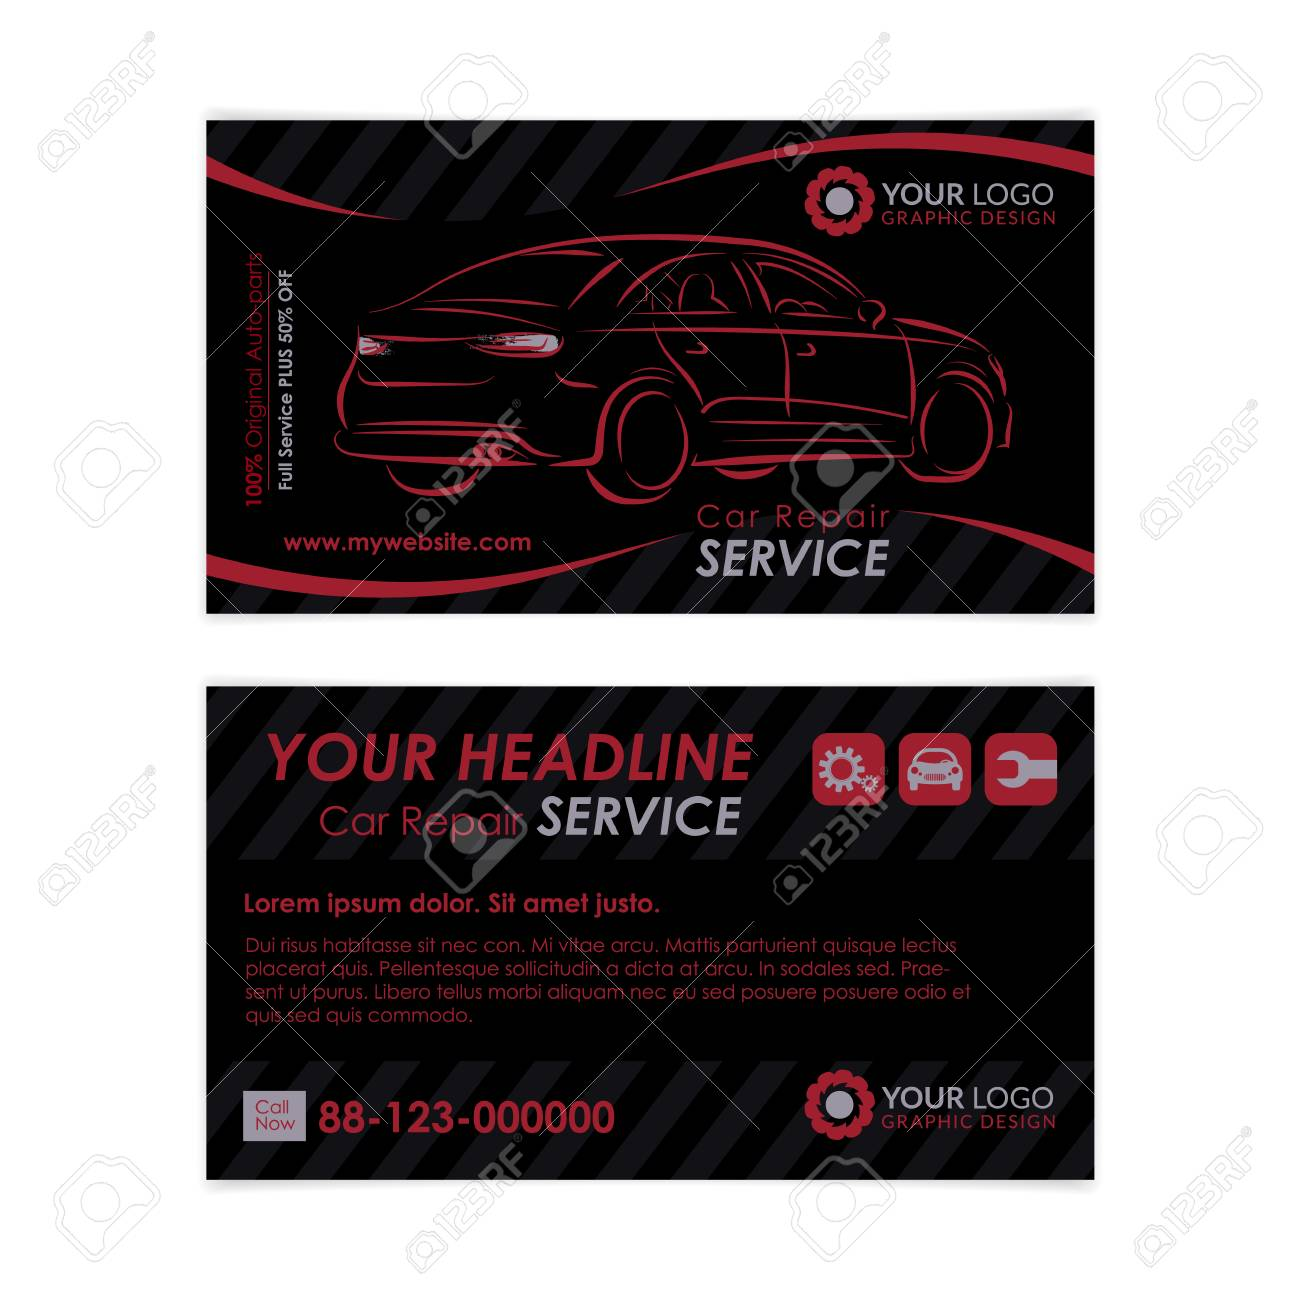 Auto repair business card template create your own business auto repair business card template create your own business cards mockup vector illustration fbccfo Choice Image